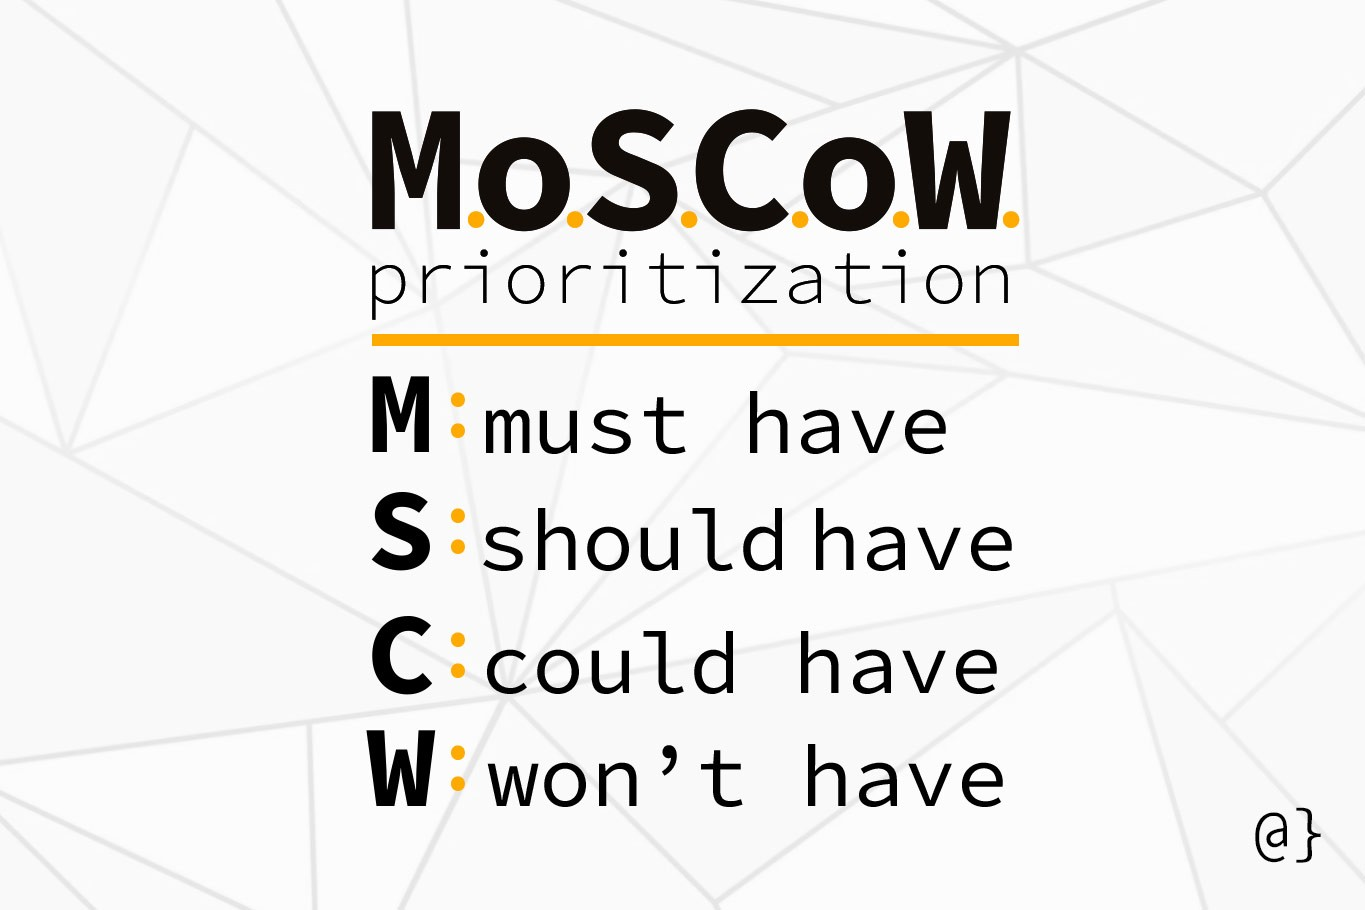 moscow prioritization steps